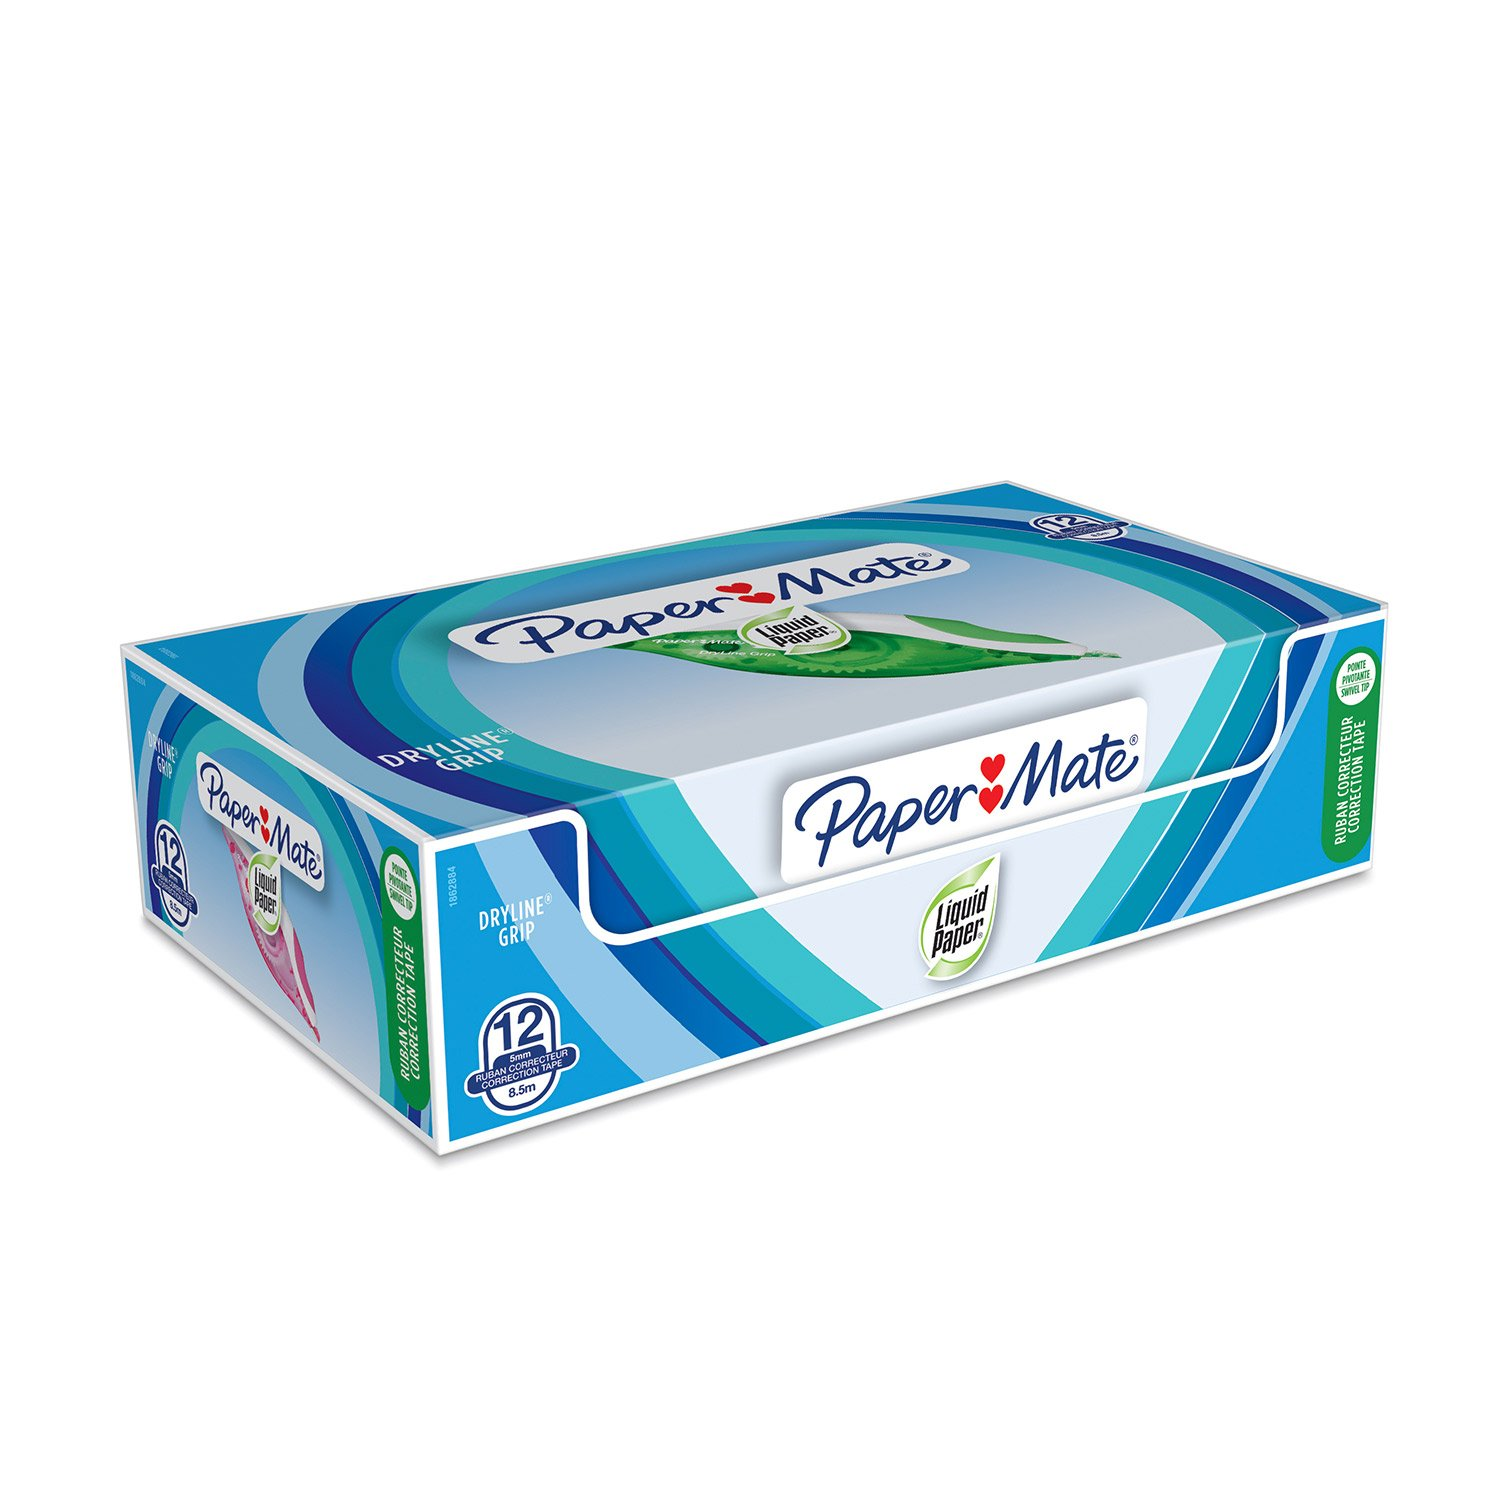 PaperMate Medium Point Liquid Paper DryLine Grip Correction Tape, Assorted Colours, Box of 12 by Paper Mate (Image #1)